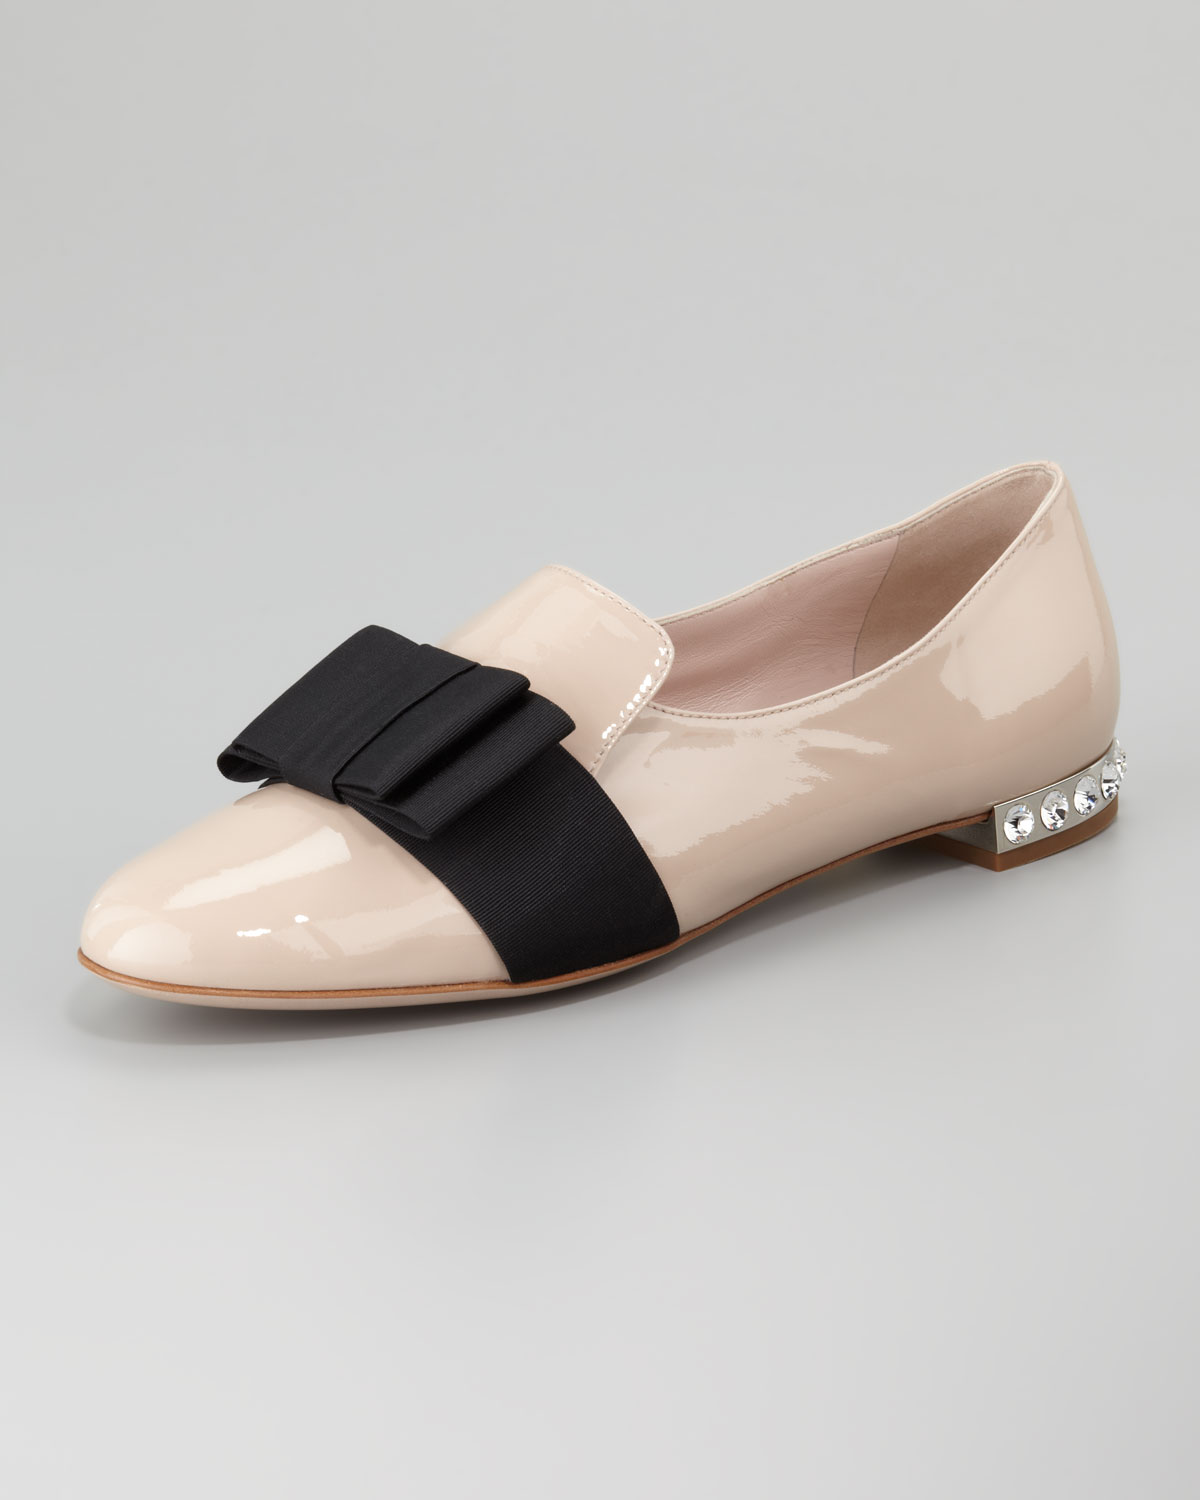 5b37fb61033 Lyst - Miu Miu Patent Leather Bow Loafer in Pink